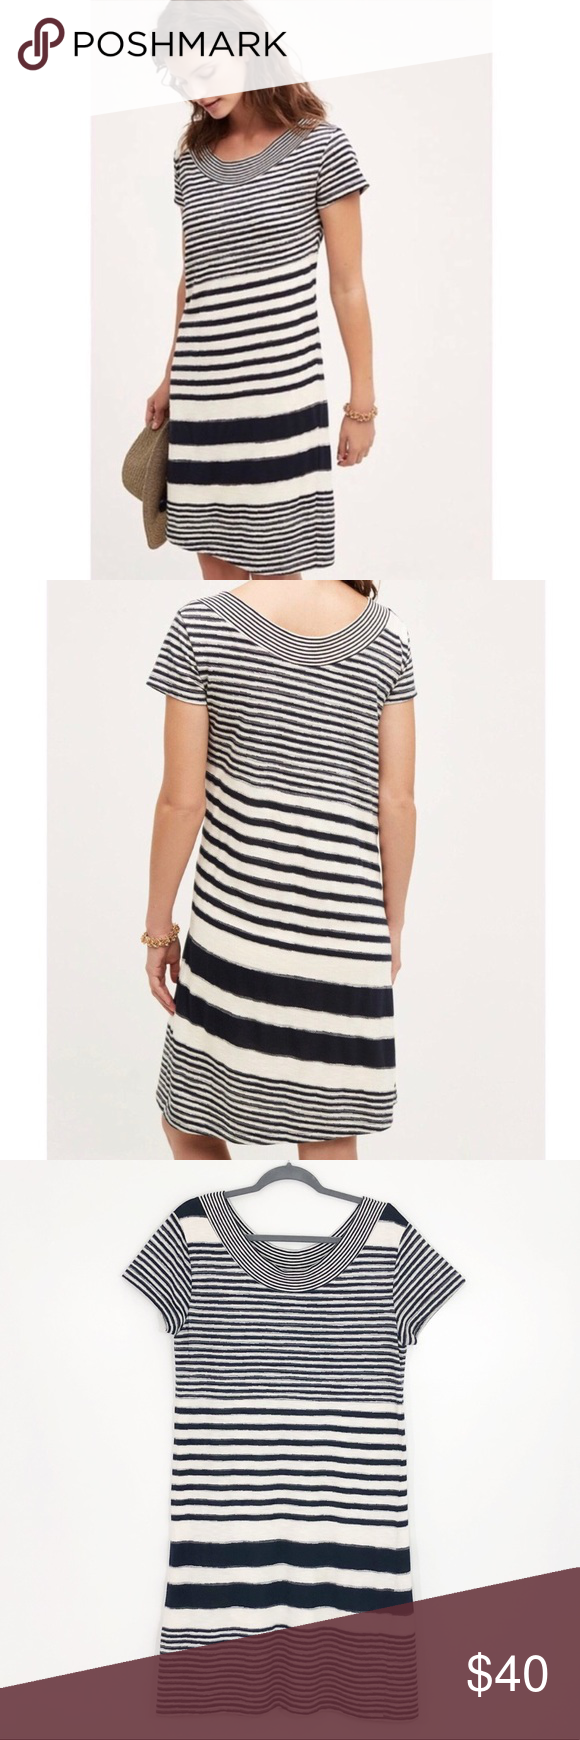 e529a717ceb7 Anthropologie Maeve Haven Striped Dress Navy Cream Anthropologie Maeve  Haven Striped Knee-length Dress Colors are Navy and Cream Fully lined Short  sleeve ...